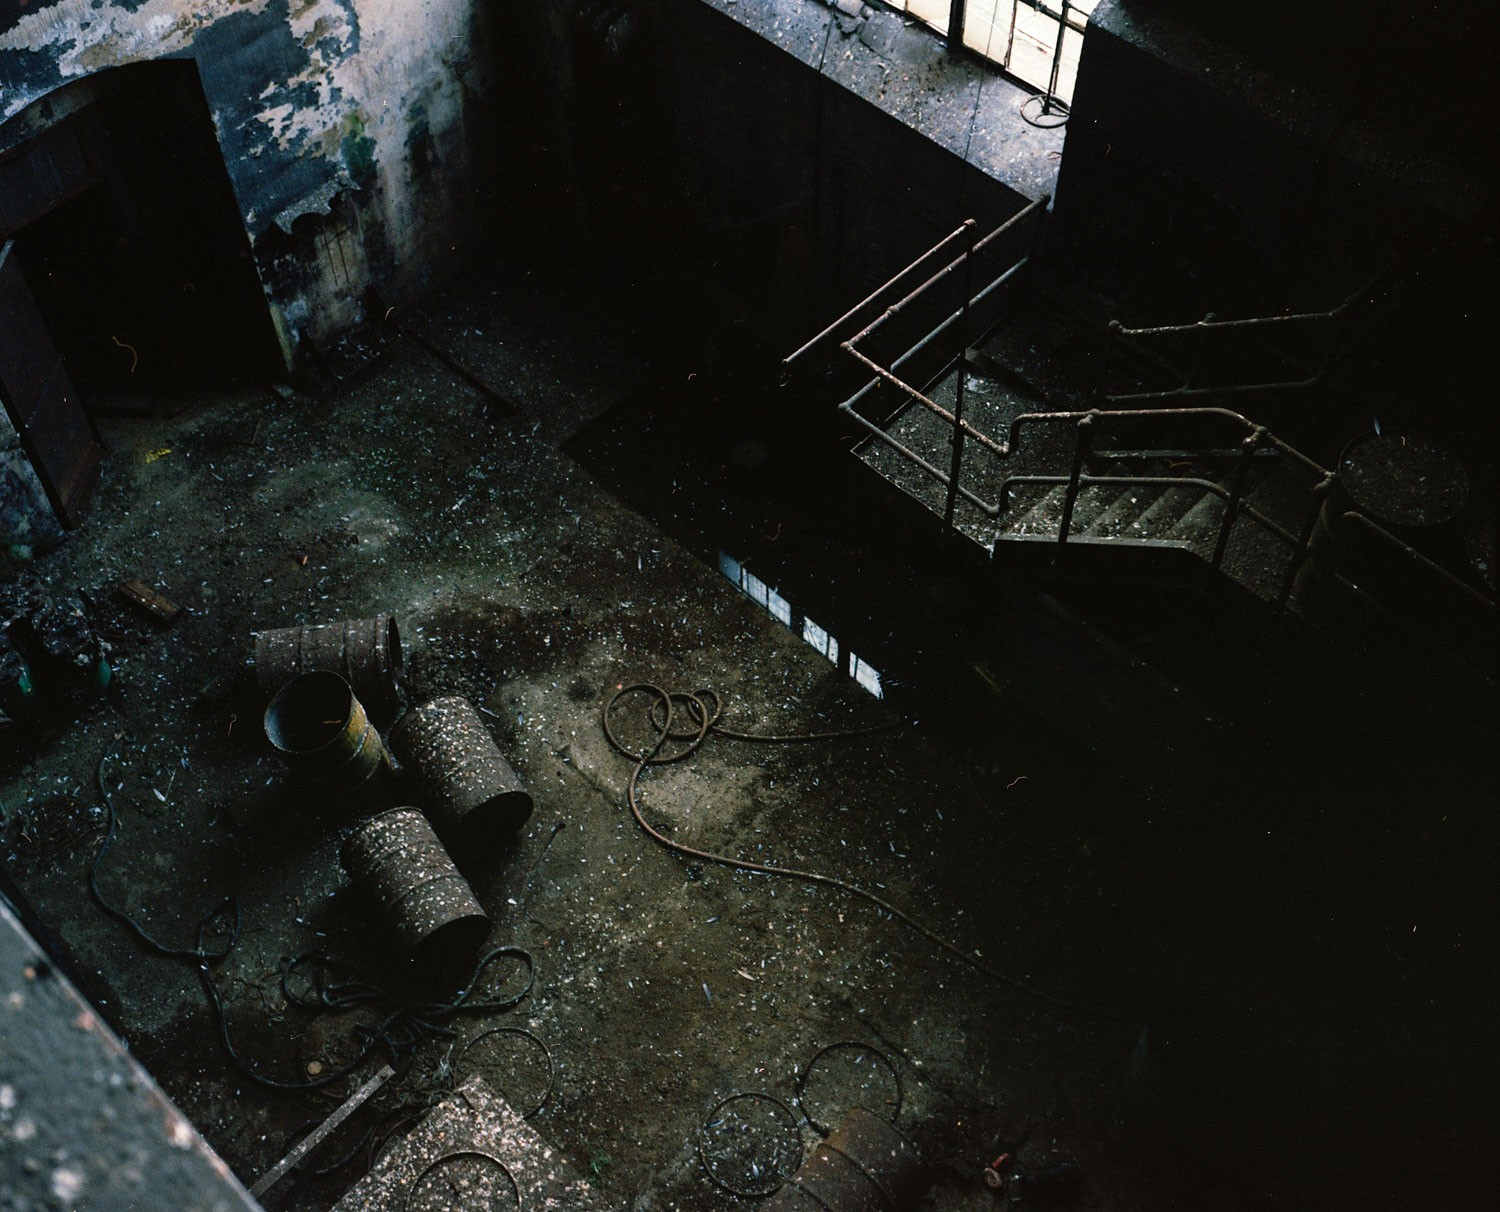 A photograph of the ground level at Gould Street Generating Station, just months after its closure.